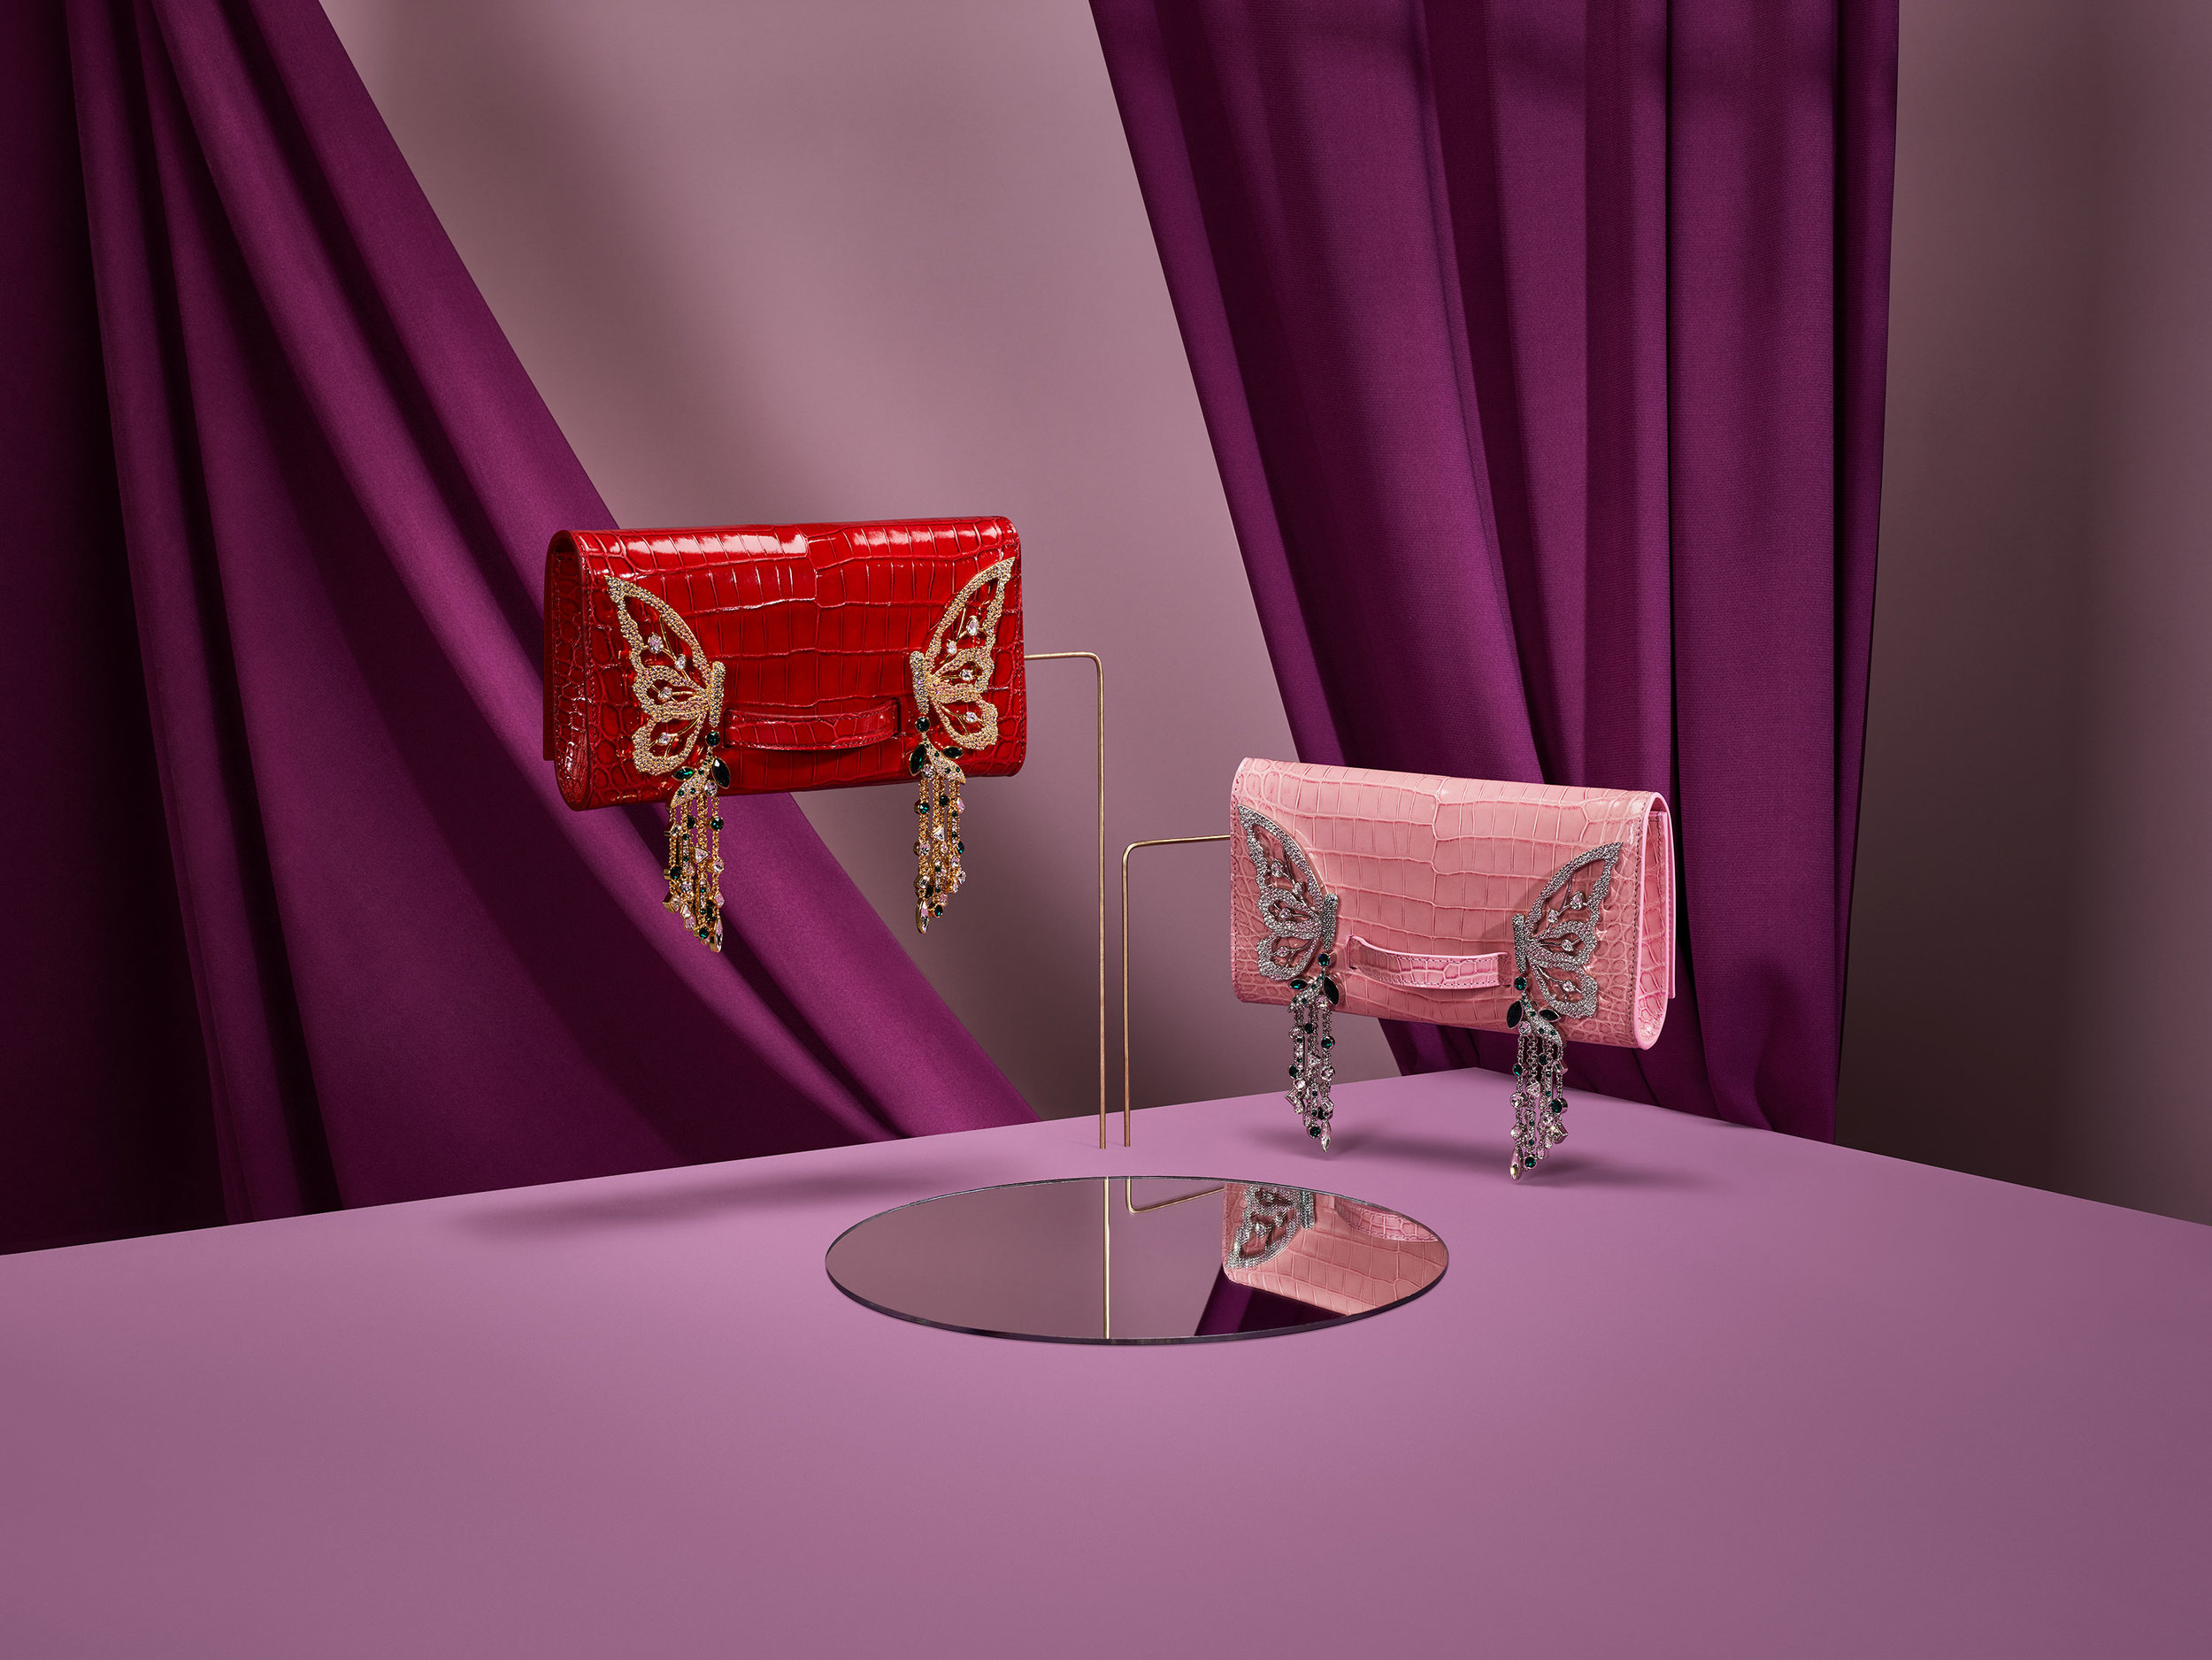 APPROACH_RETOUCH_STILL_LIFE_MING_RAY_AW19_9.jpg